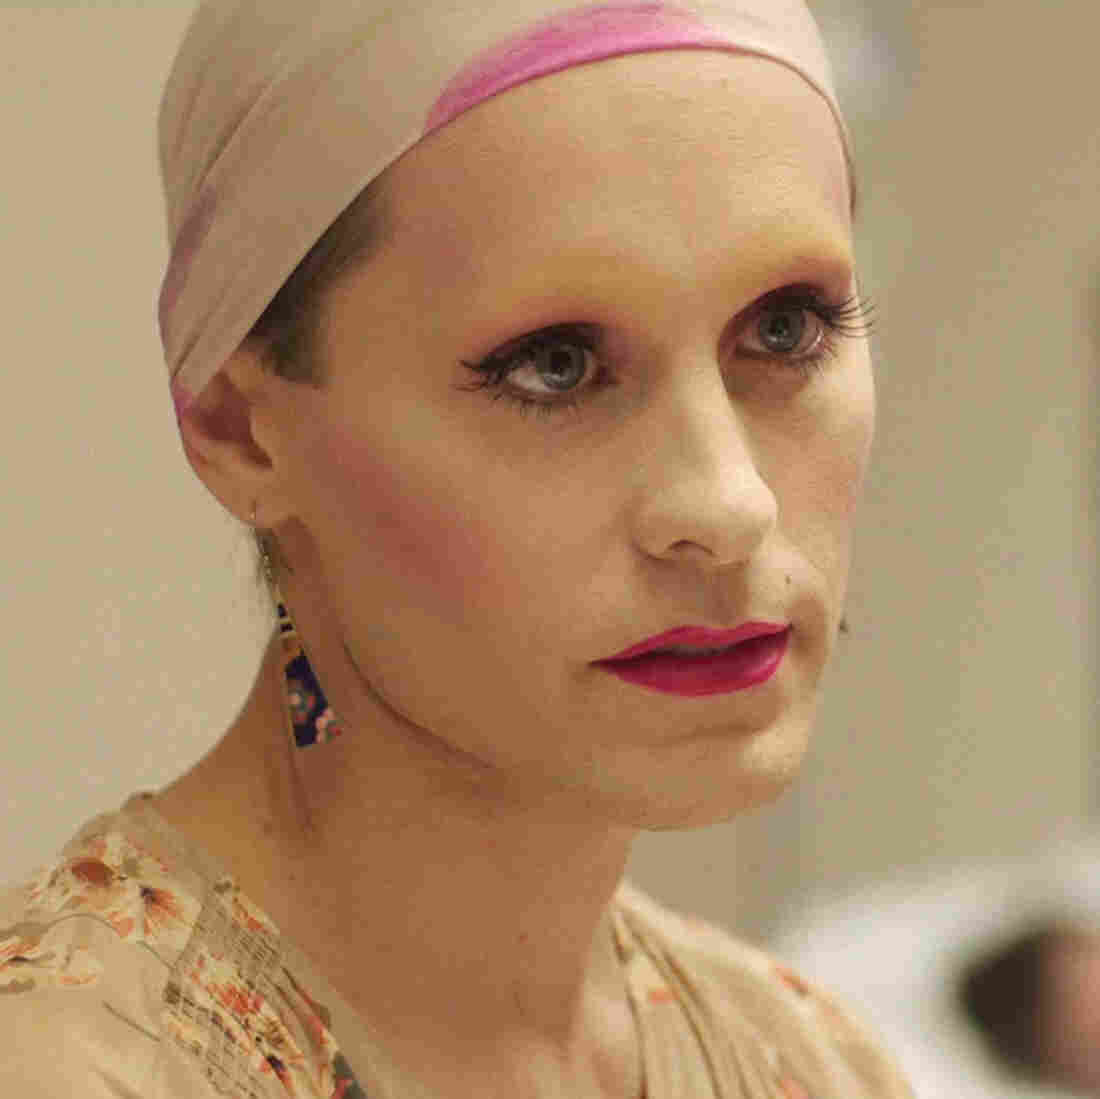 "In Dallas Buyers Club, Jared Leto plays Rayon, a transgender woman who is HIV-positive and struggling with a drug habit. ""I always saw Rayon as someone who wanted to live ... life as a woman, not just someone who enjoyed putting on women's clothing,"" Leto says."